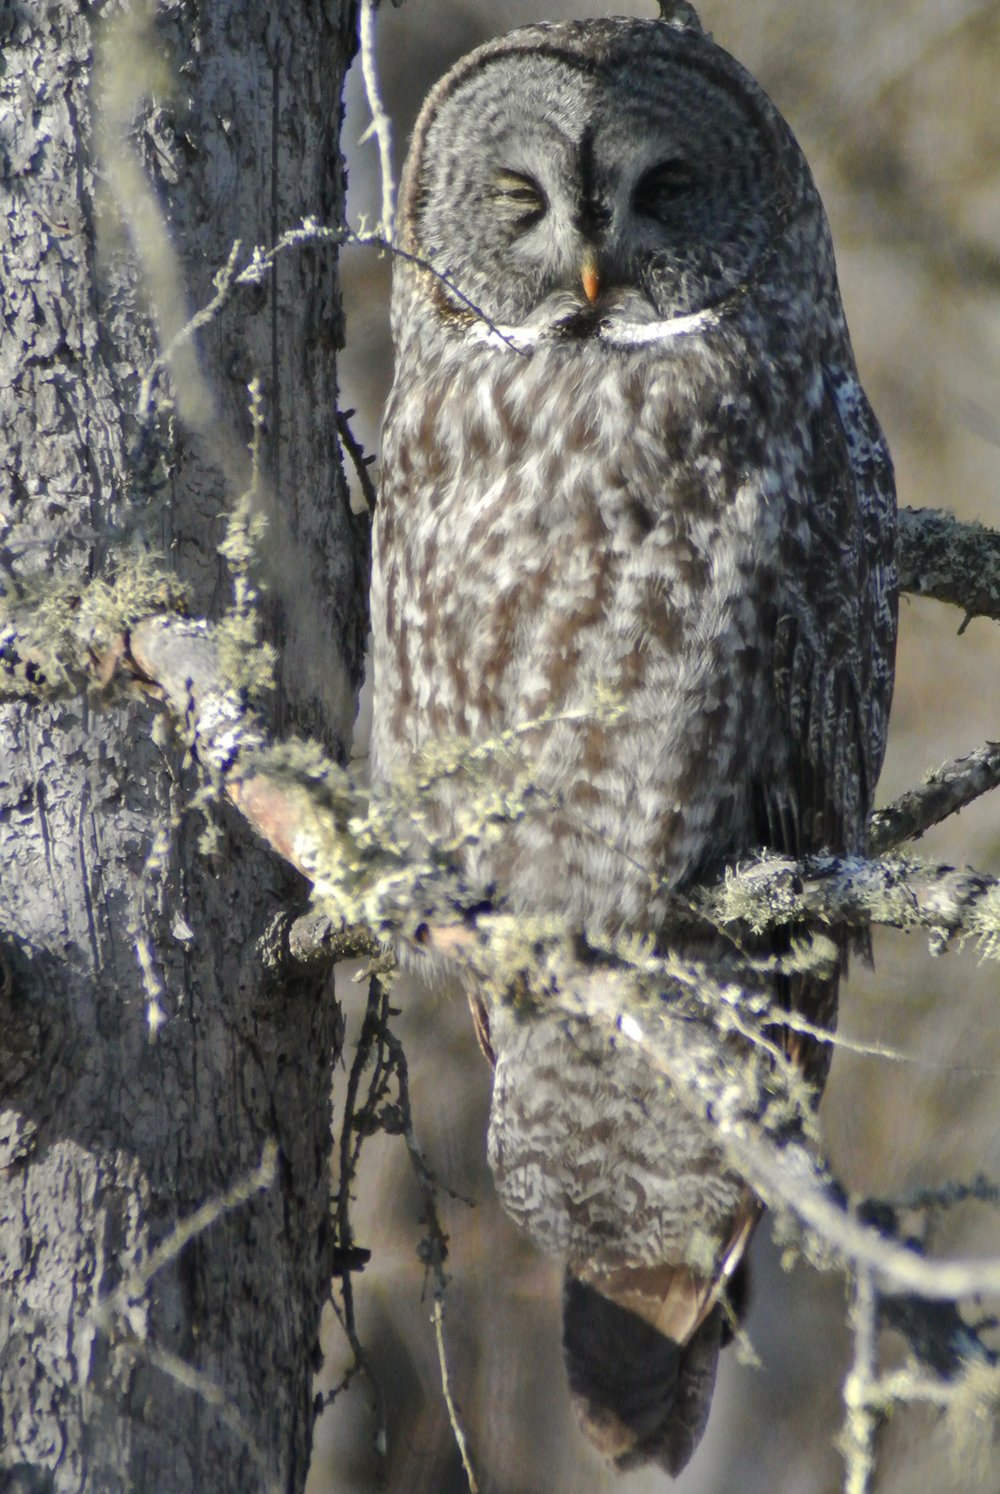 A great new year for birdwatchers chasing northern owls ...